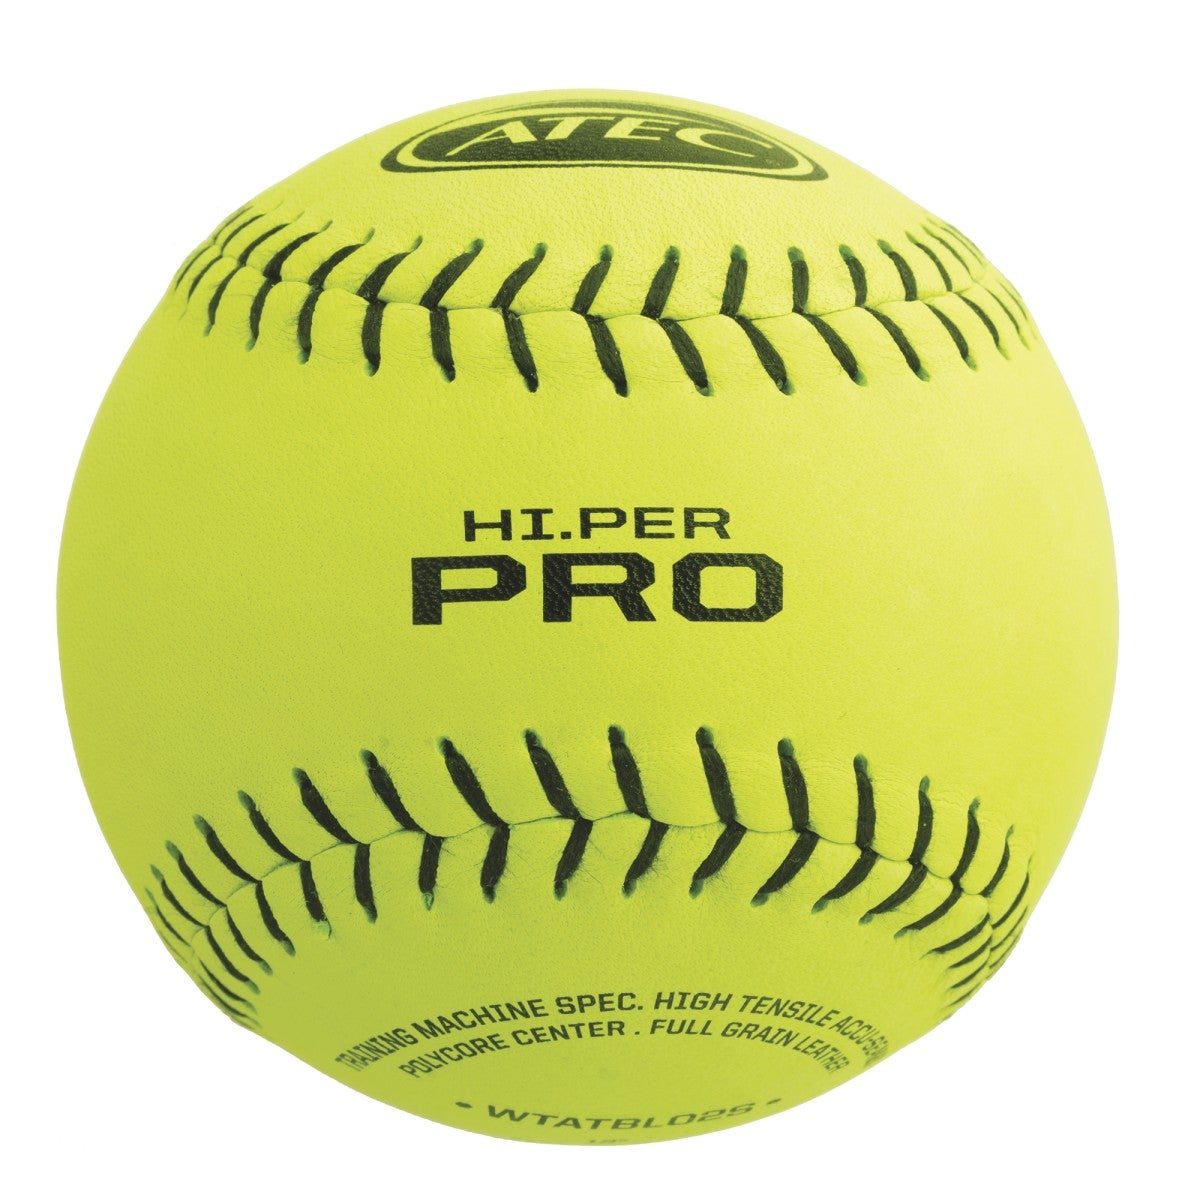 ATEC Hi.Per Pro - Leather Flat Seam Softball